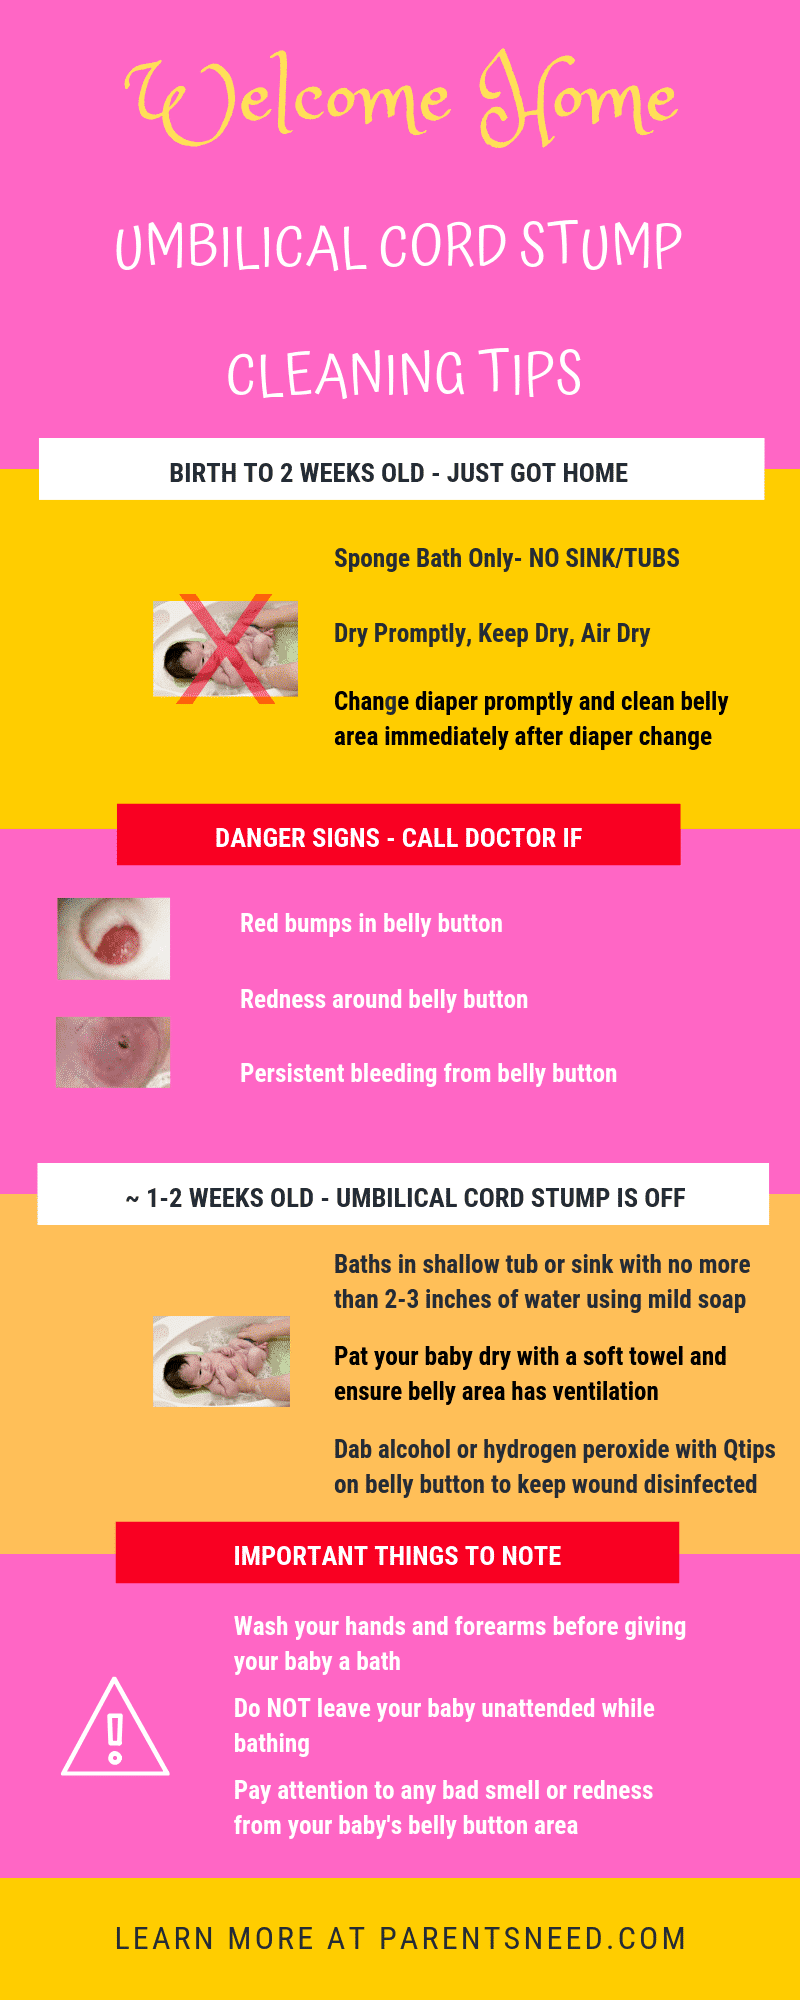 infographic tips to care for baby's umbilical cord stump after it comes off